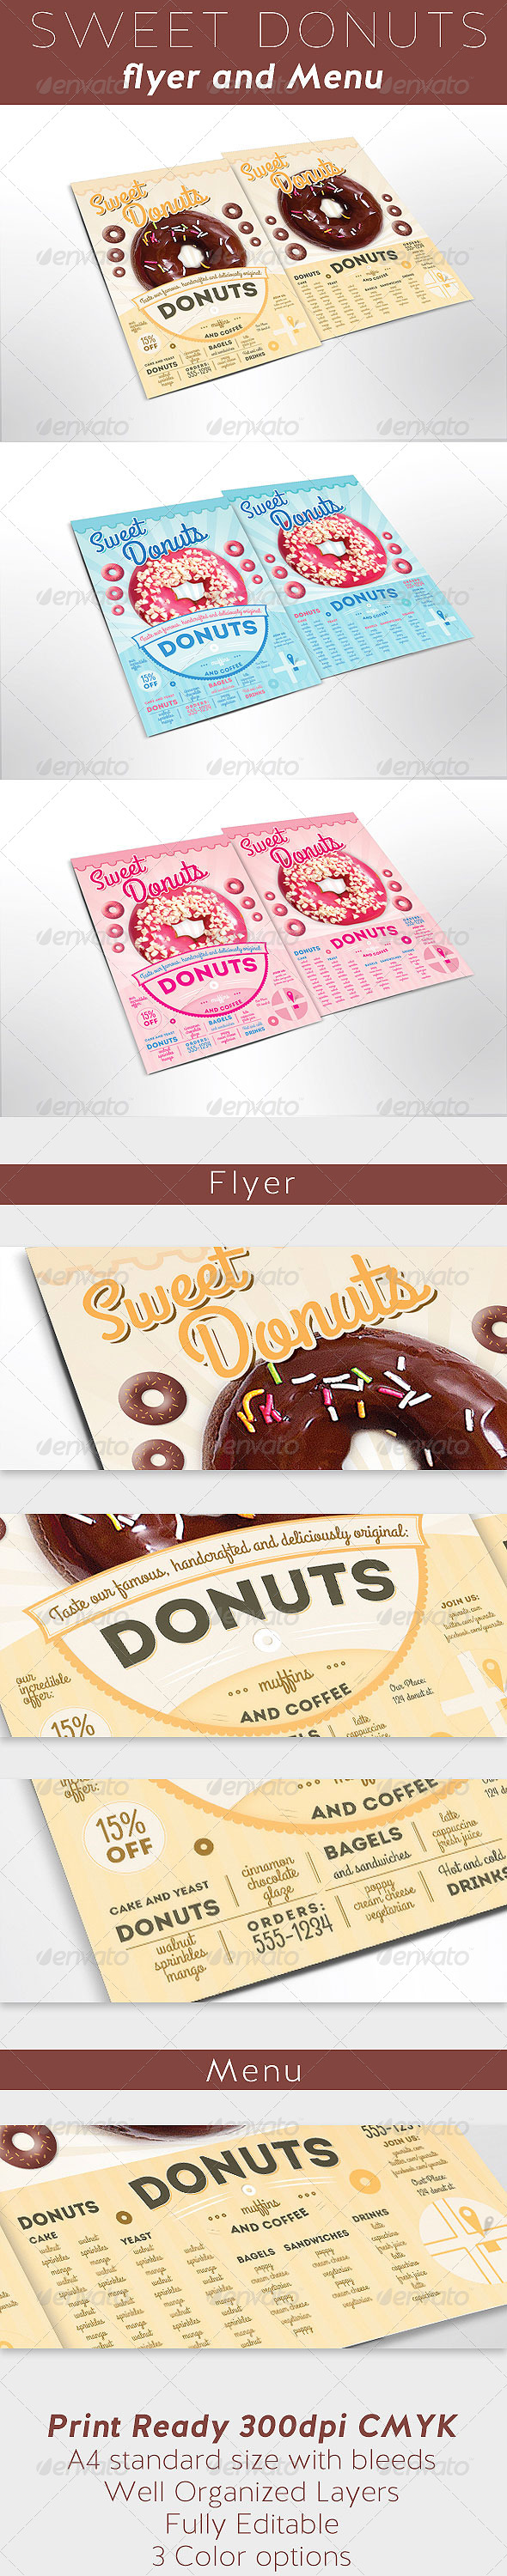 GraphicRiver Sweet Donuts Flyer and Menu Template 7995169